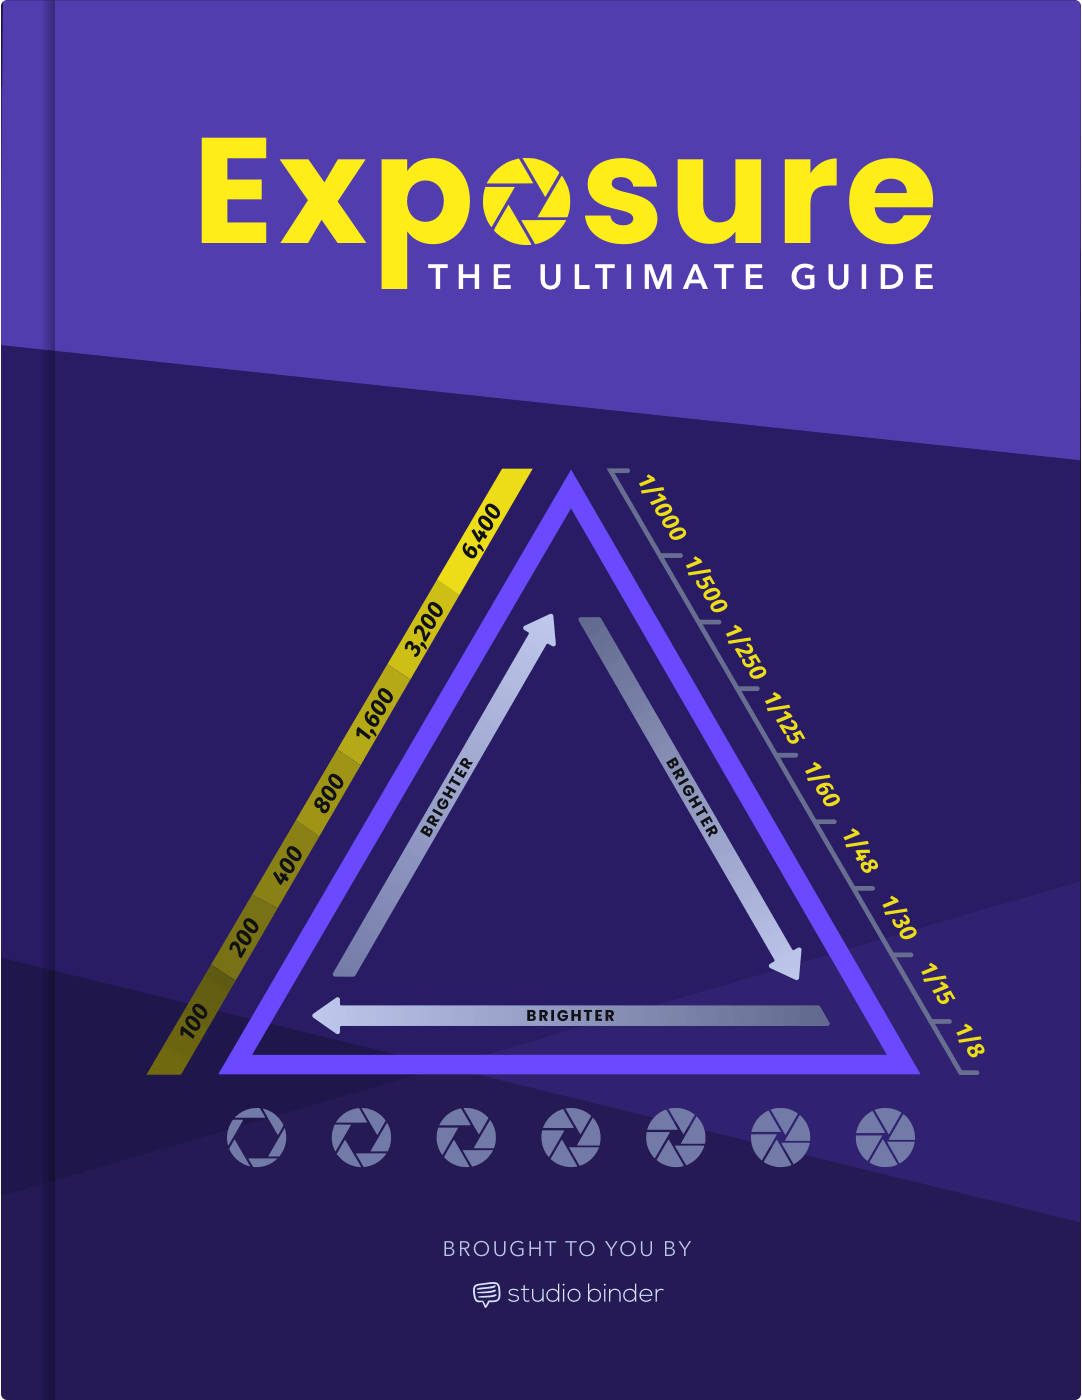 Exposure - The Ultimate Guide to the Exposure Triangle (Free Ebook)